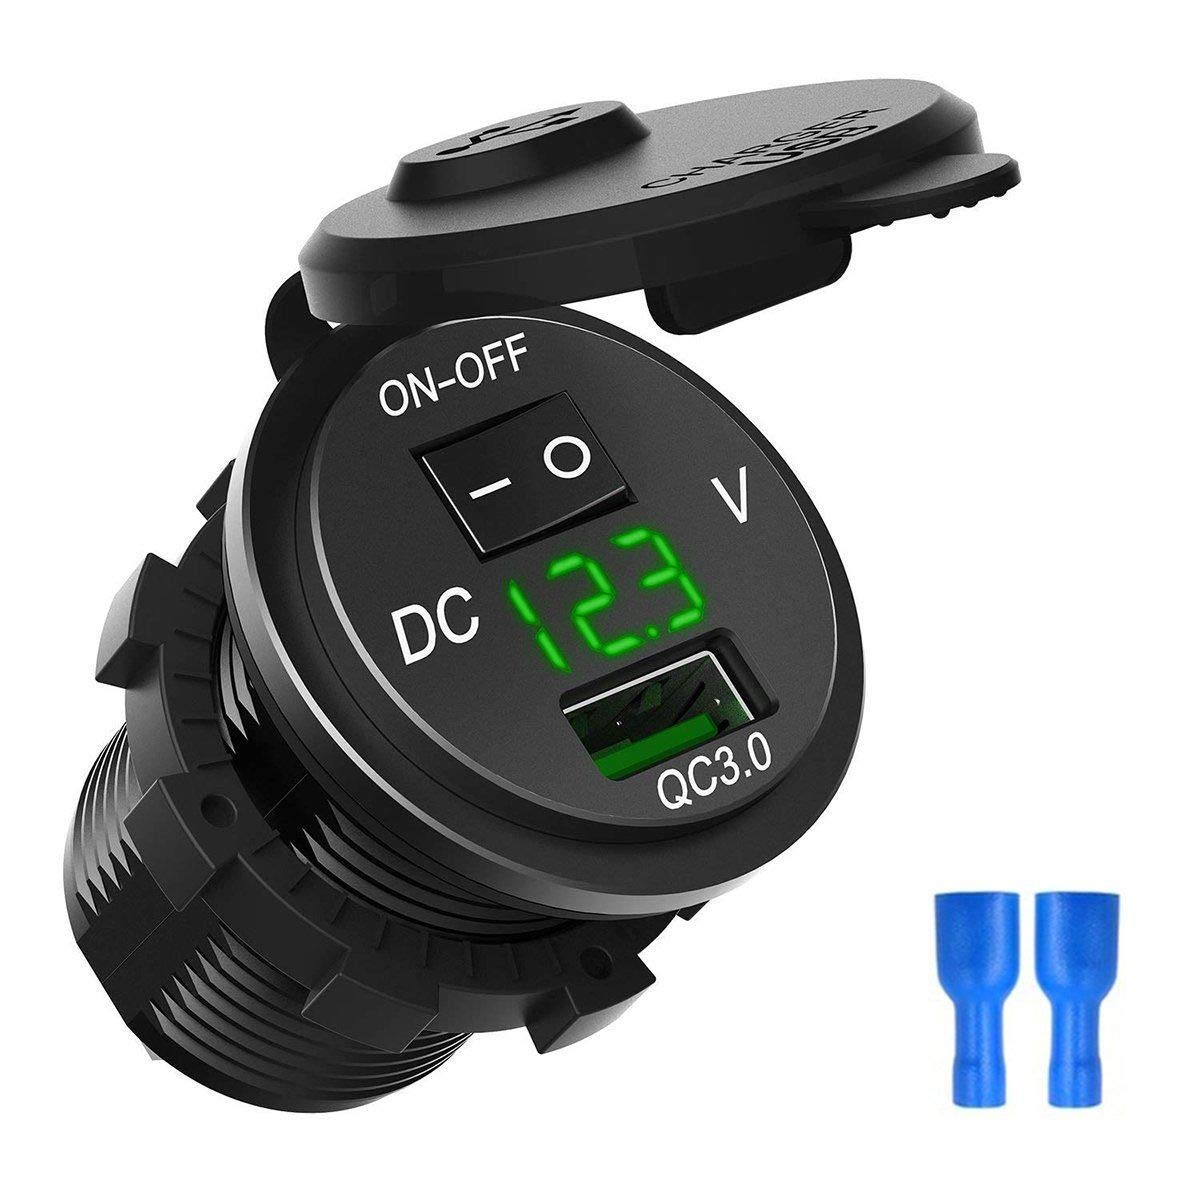 ZYTC Waterproof QC3.0 Car Charger USB Outlet Socket 12V//24V Blue LED Digital Voltmeter with On//Off Switch for Car Boat Motorcycle Marine